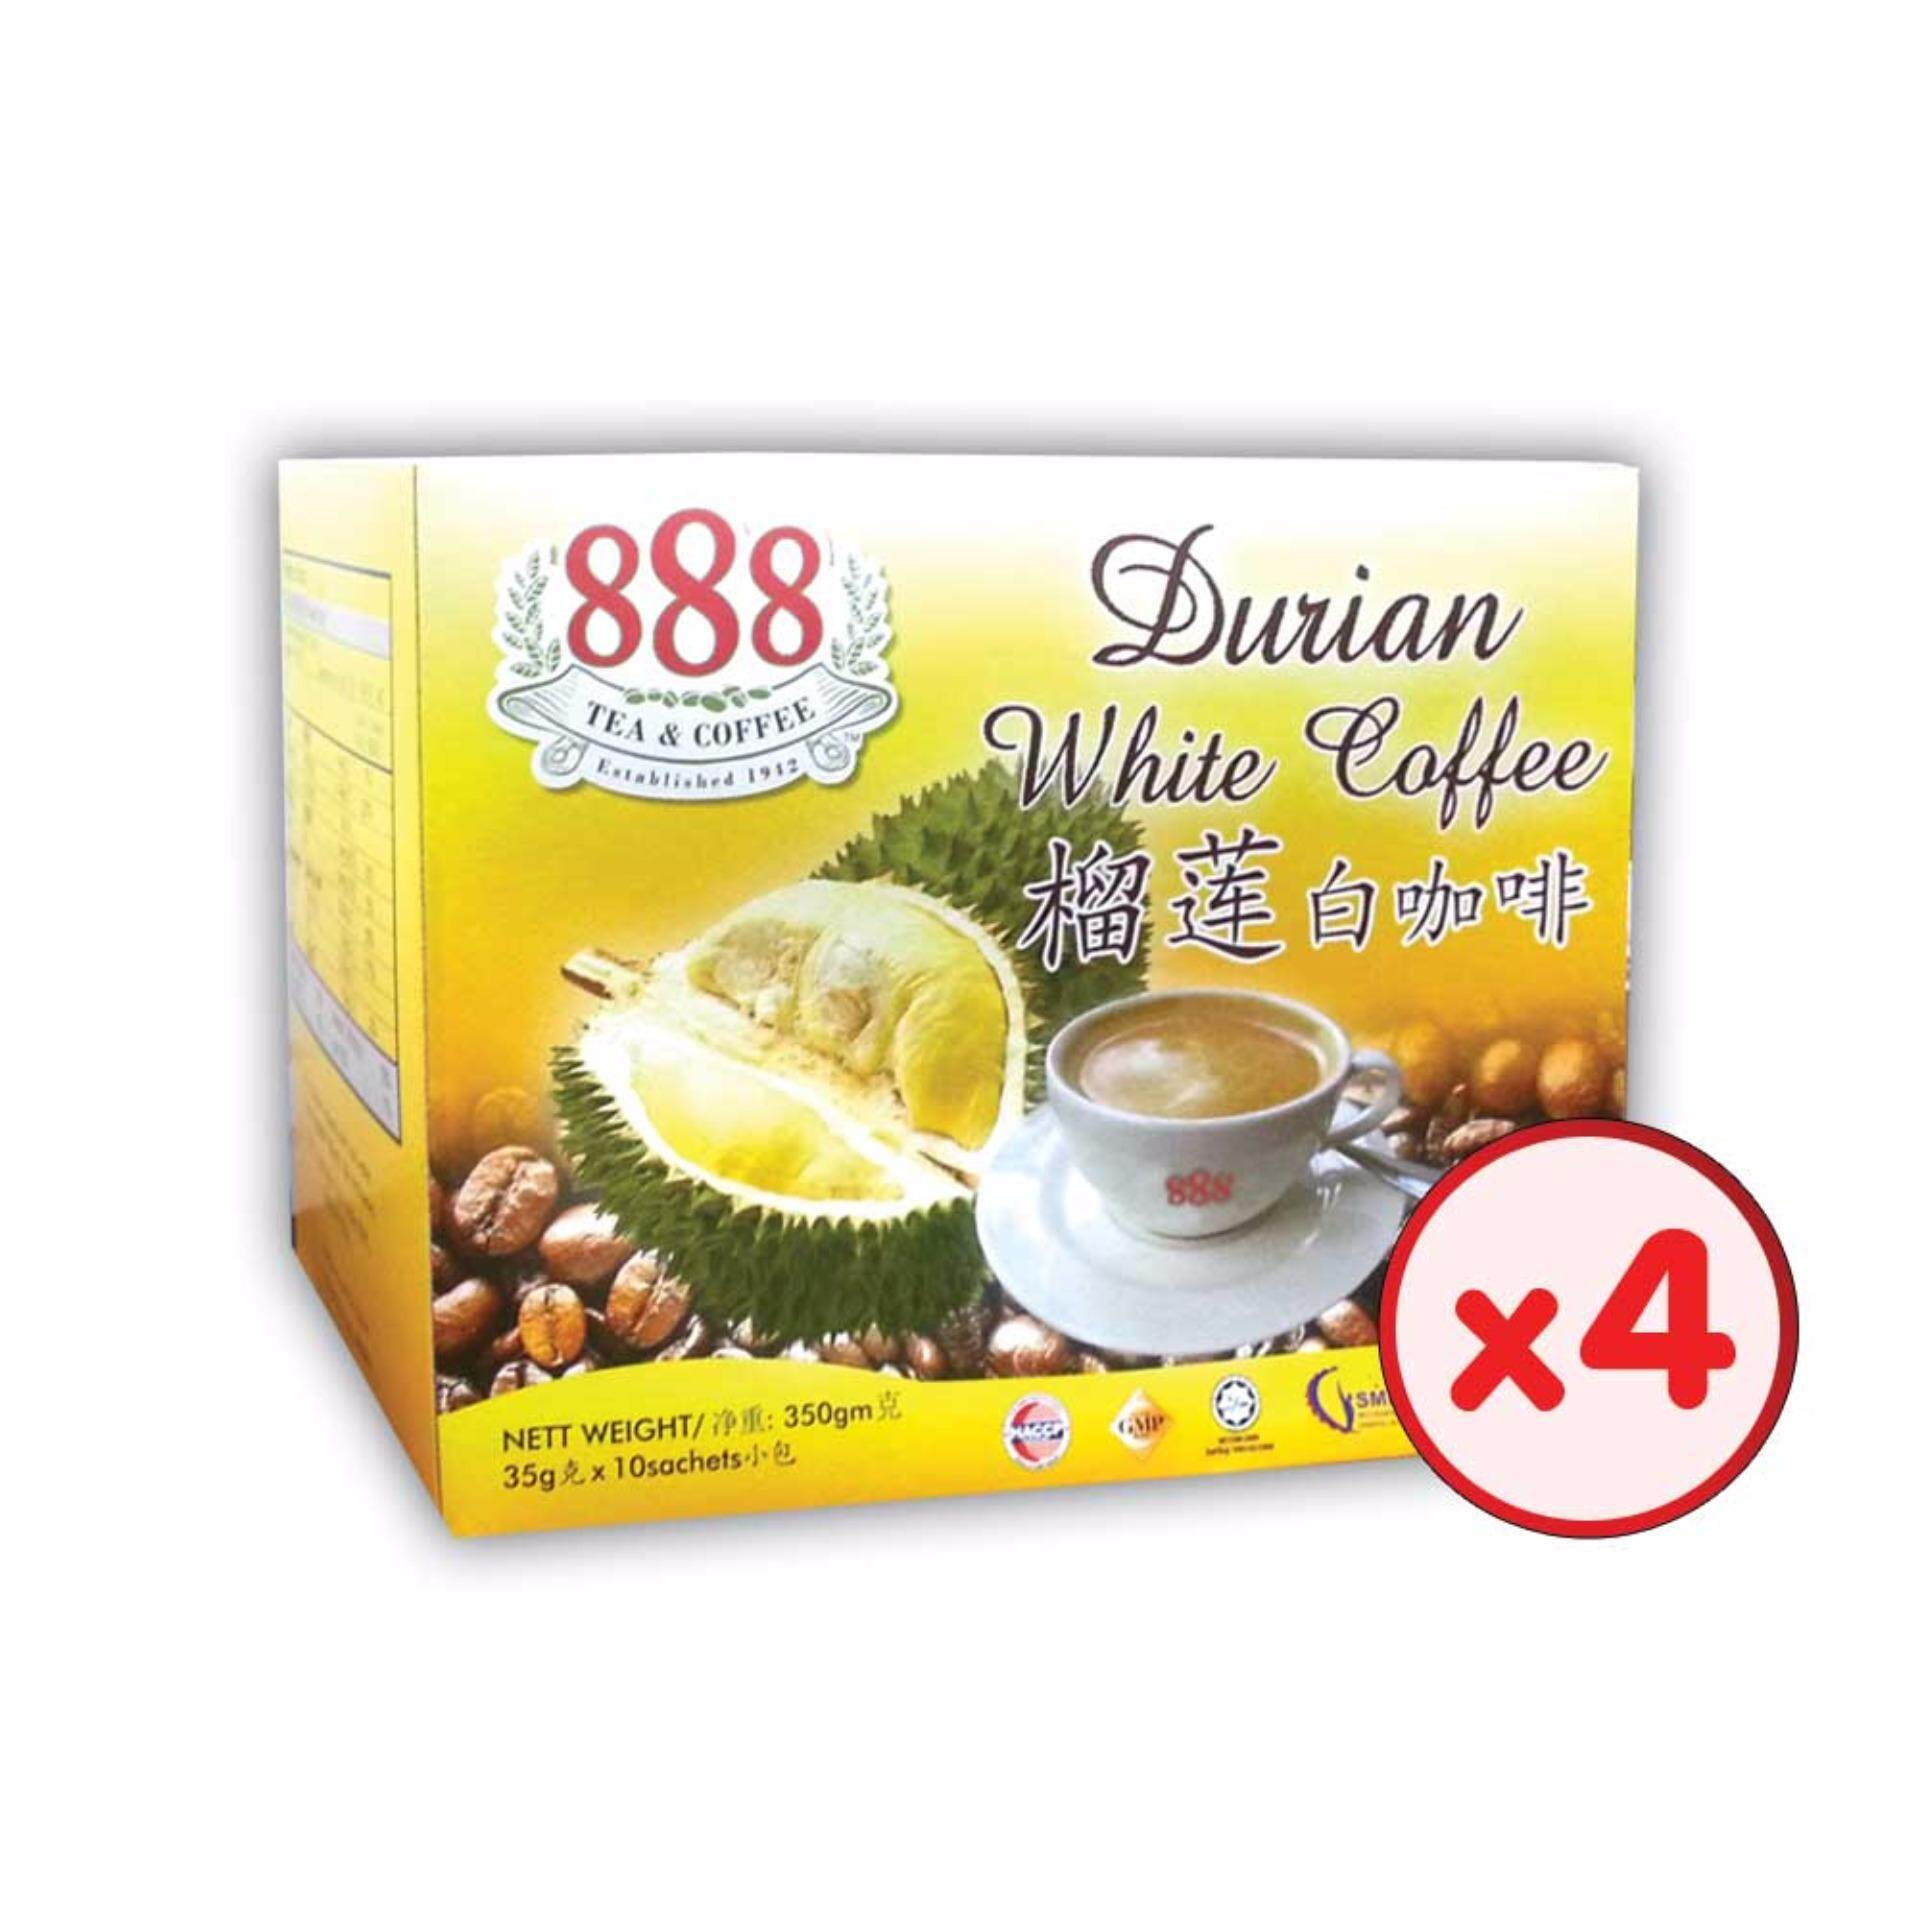 888 3 In 1 Instant Durian White Coffee (35g x 10 Sachets) - [Bundle of 4]